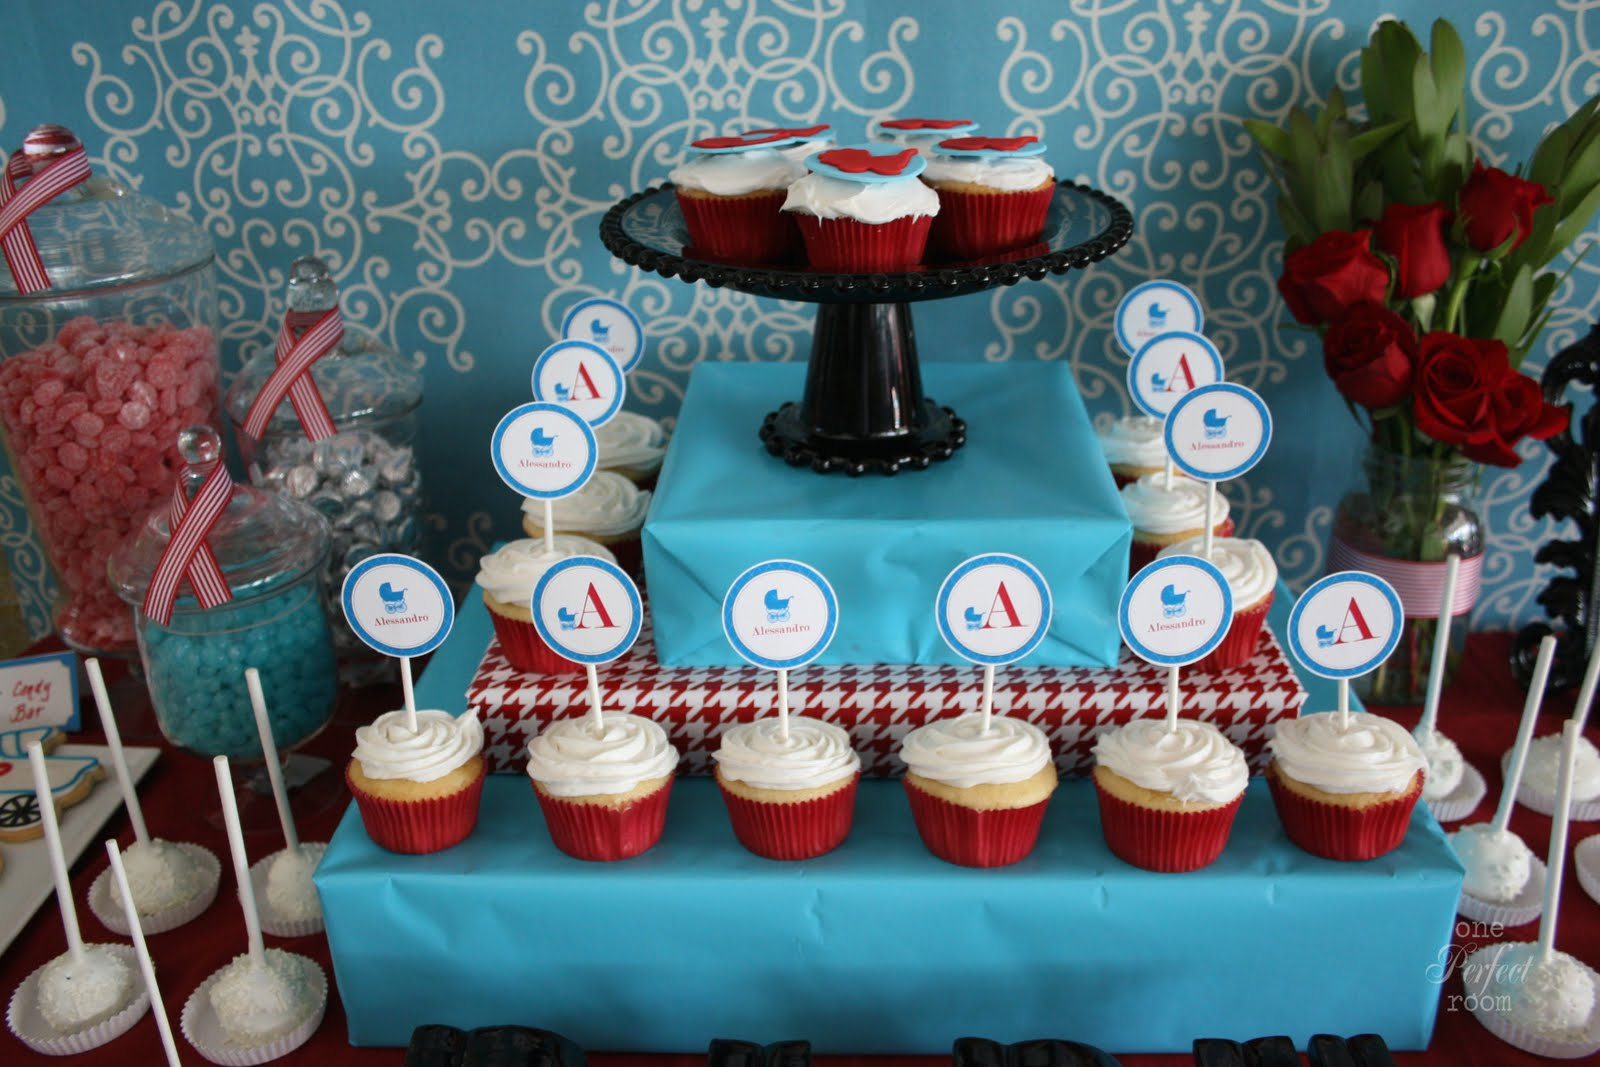 Vintage stroller baby shower5 Sayings To Put On A Baby Shower Cake